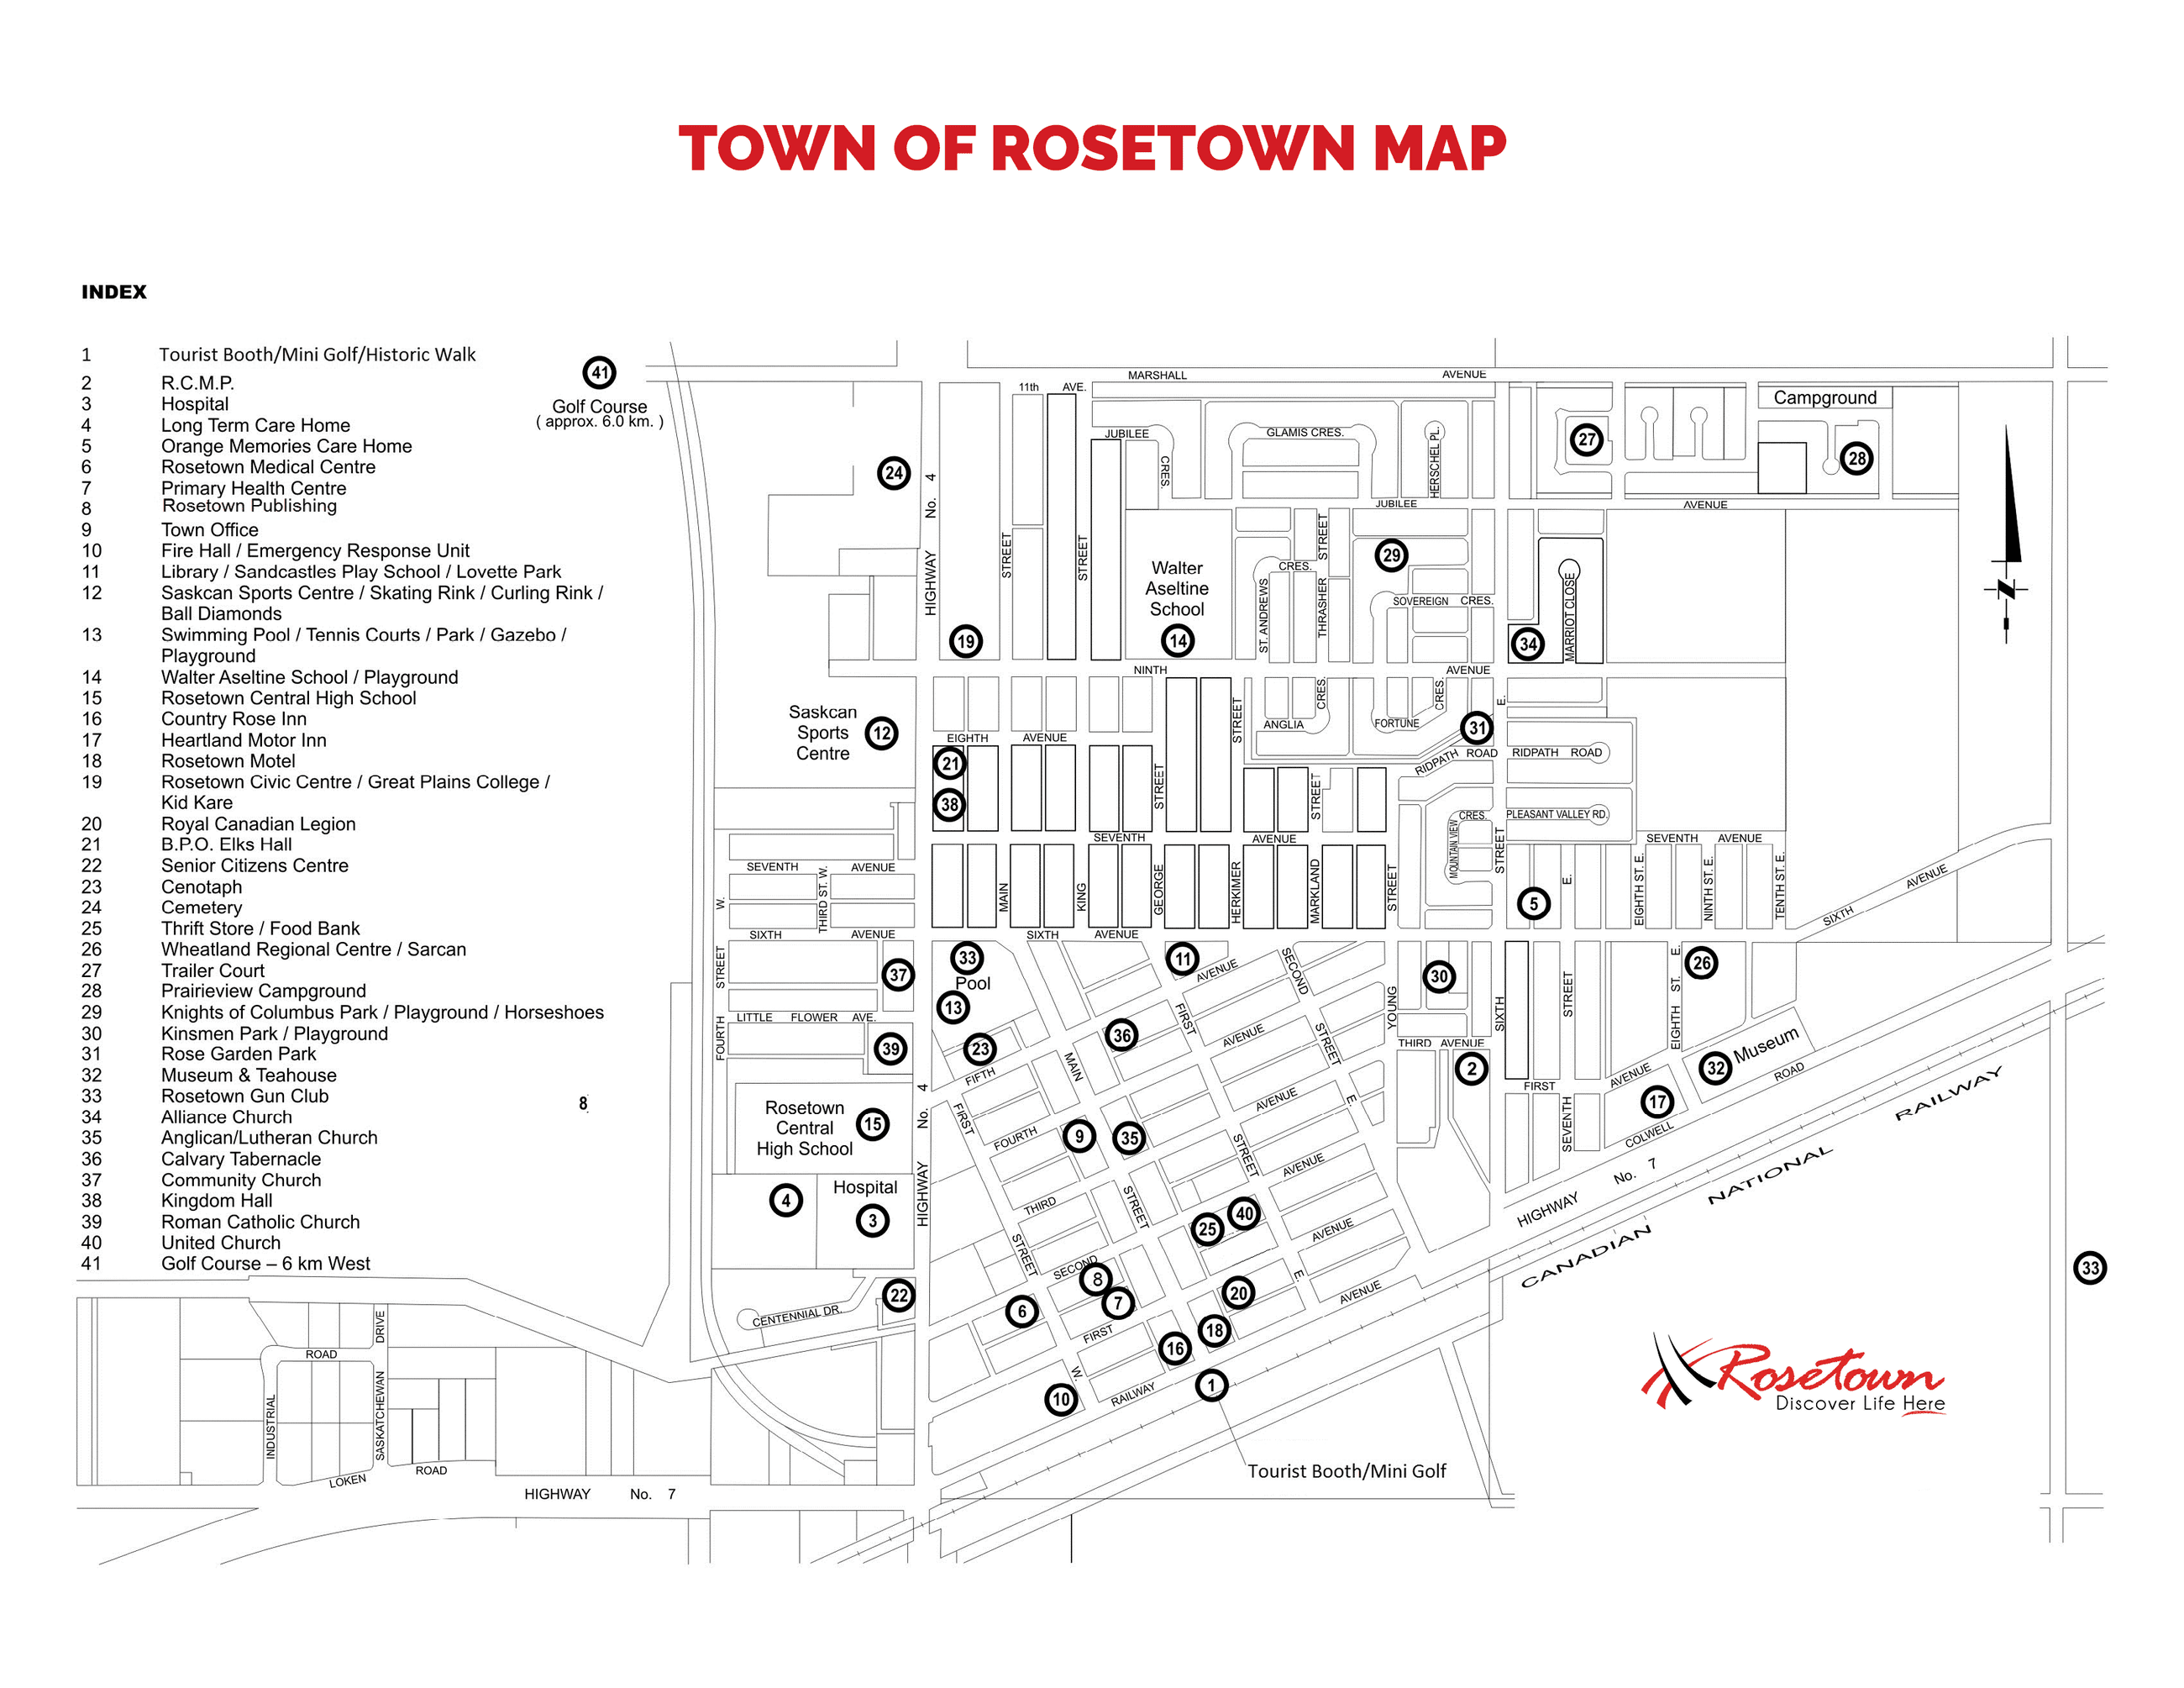 Image of town map